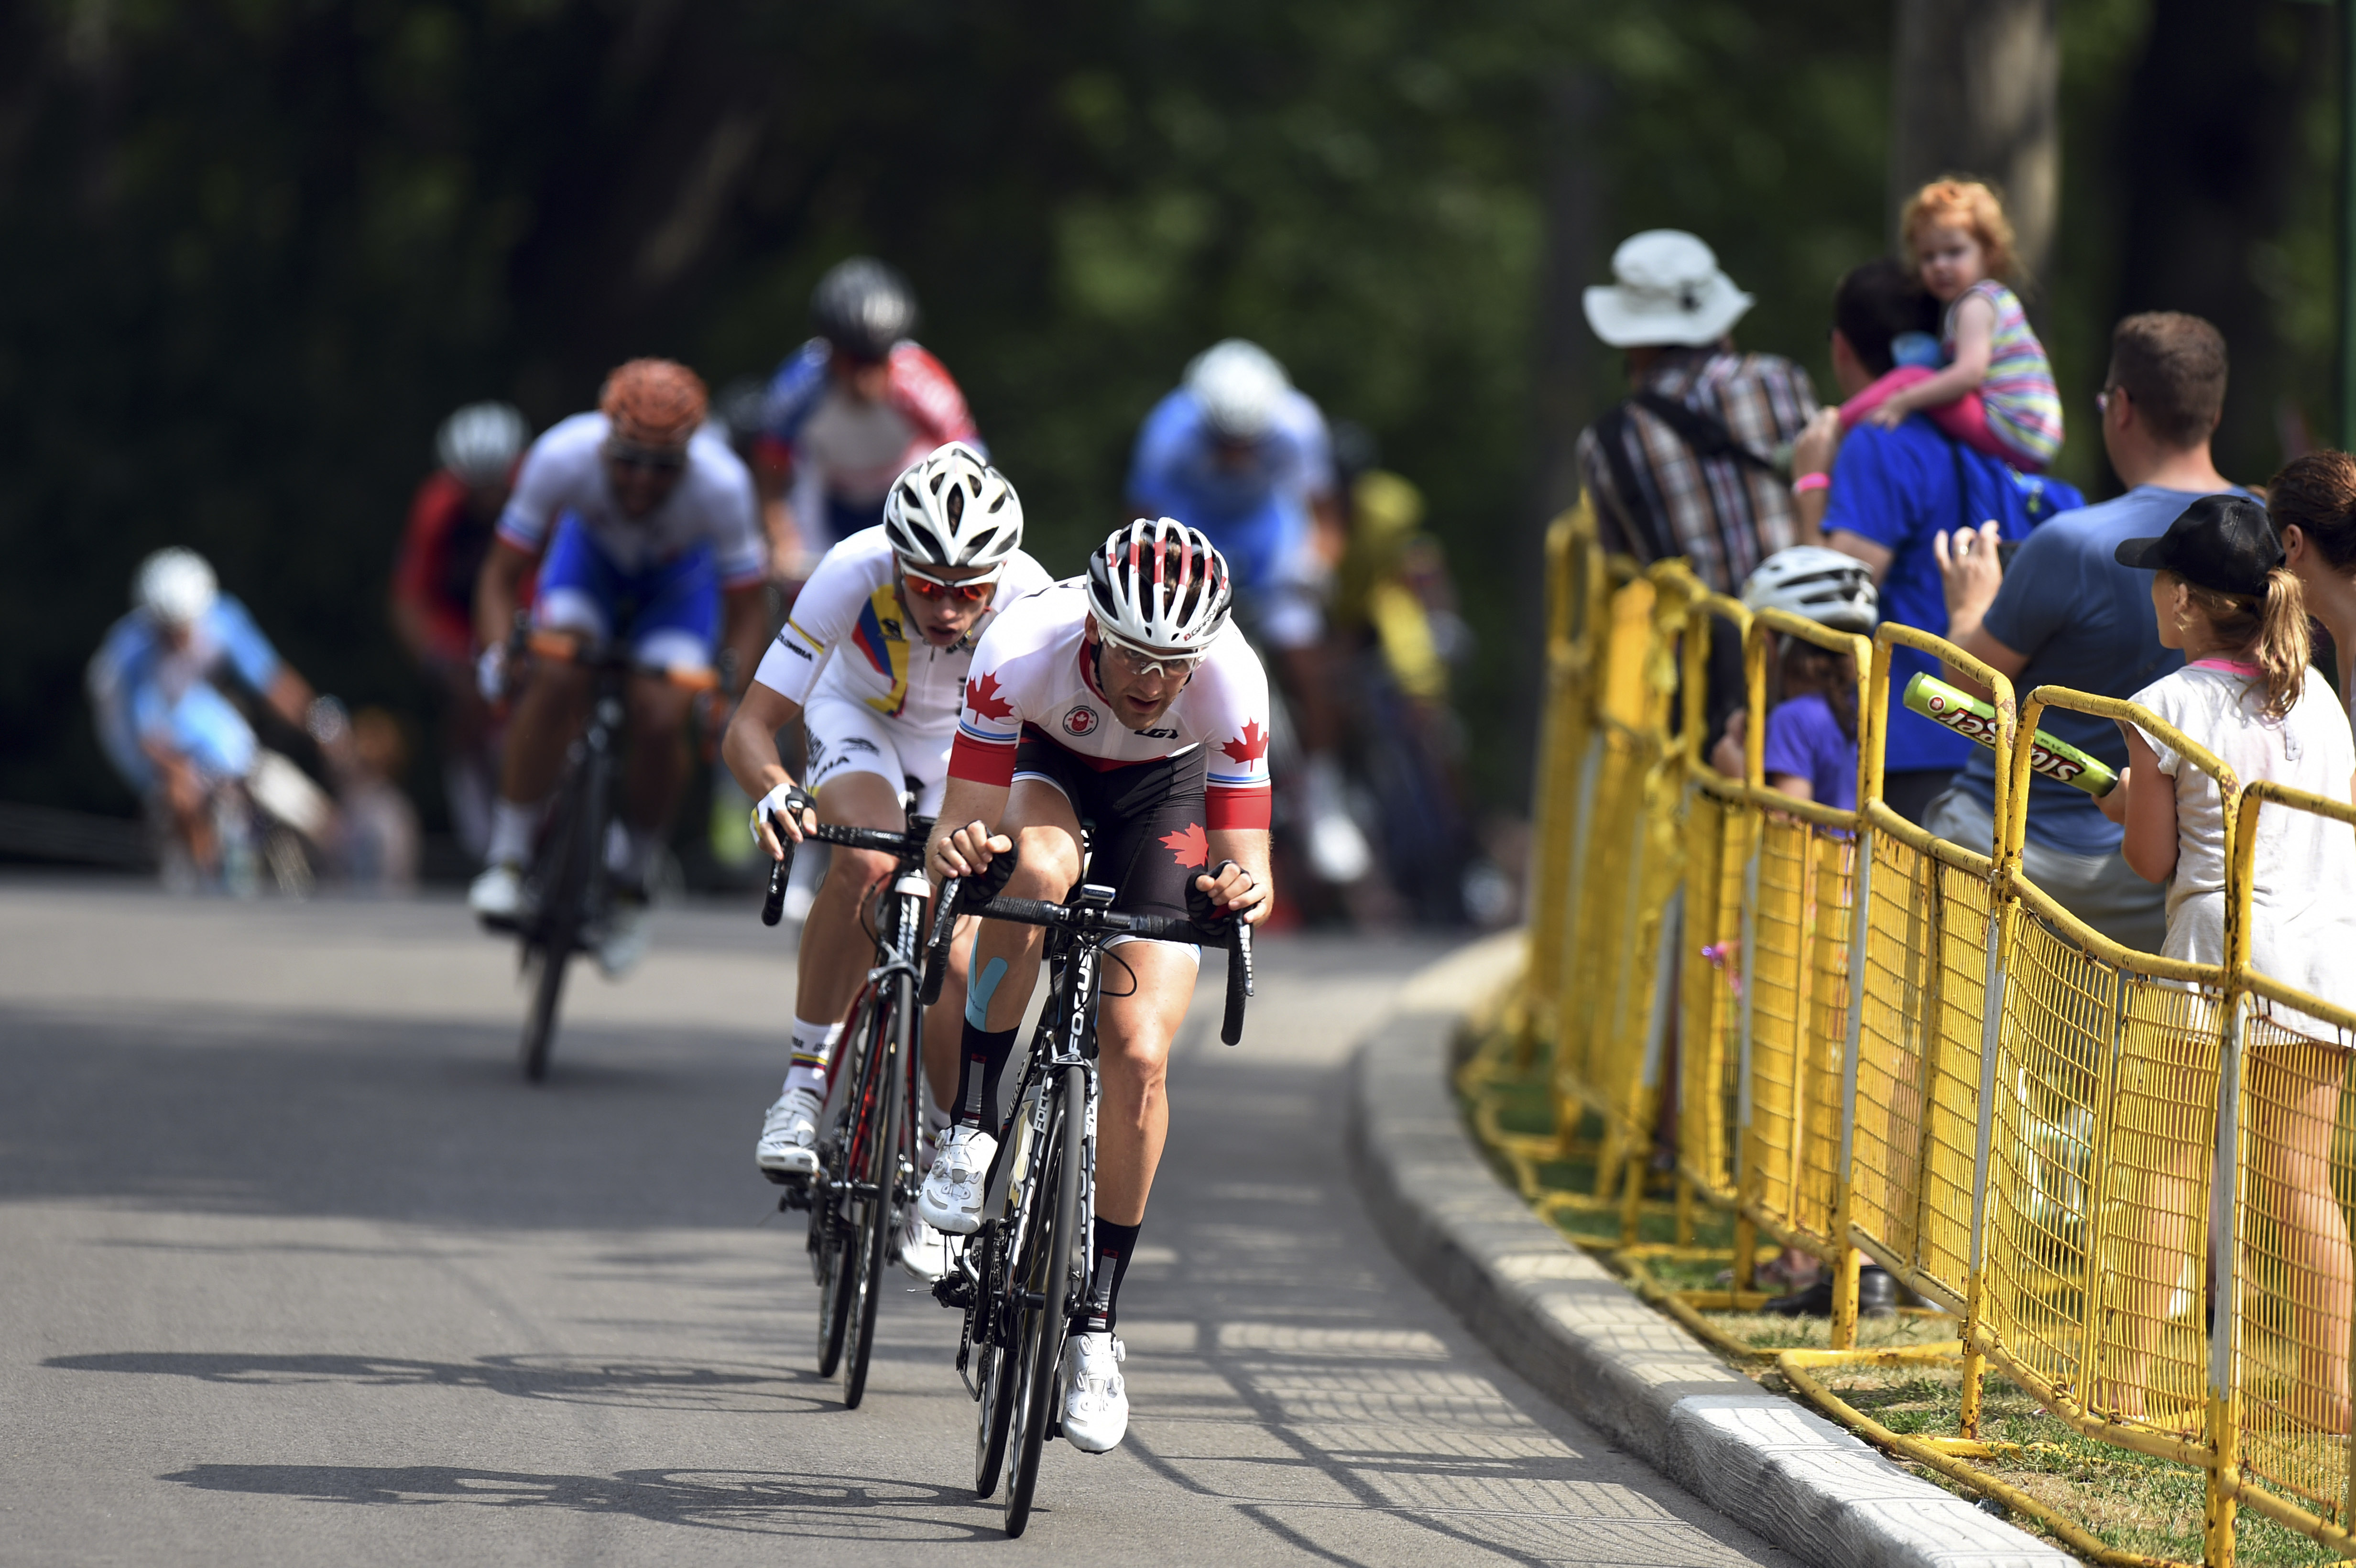 Cyclists compete in the peloton during the men's cycling road race at the 2015 Pan Am Games in Toronto, Saturday, July 25, 2015.  (Hector Retamal, Pool photo via AP)